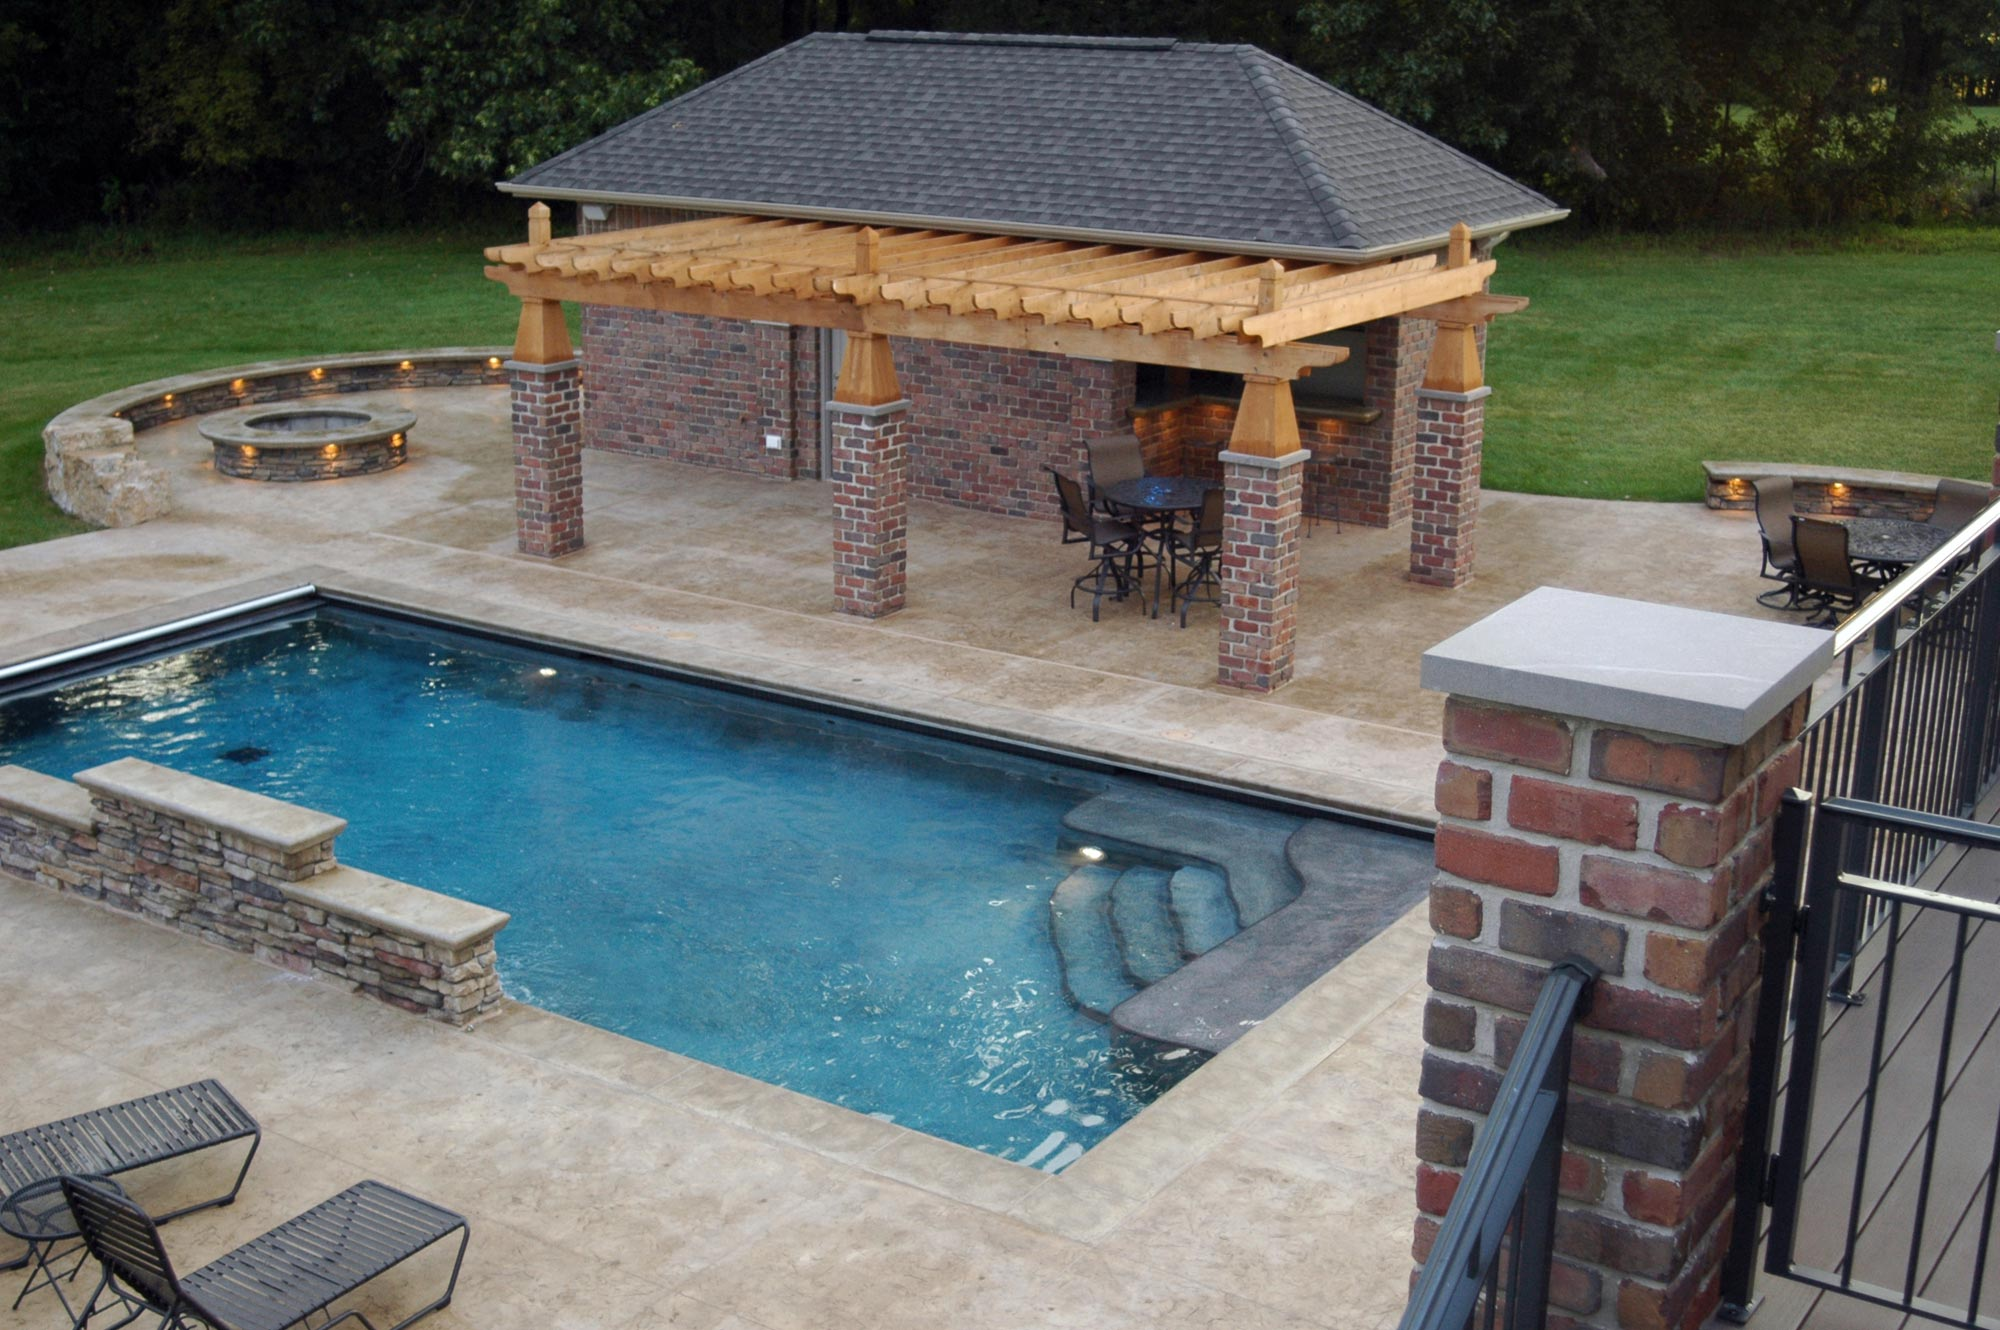 mid west rectangle pool designs with natural floor and pool lounge chairs plus outdoor living area - Rectangle Pool